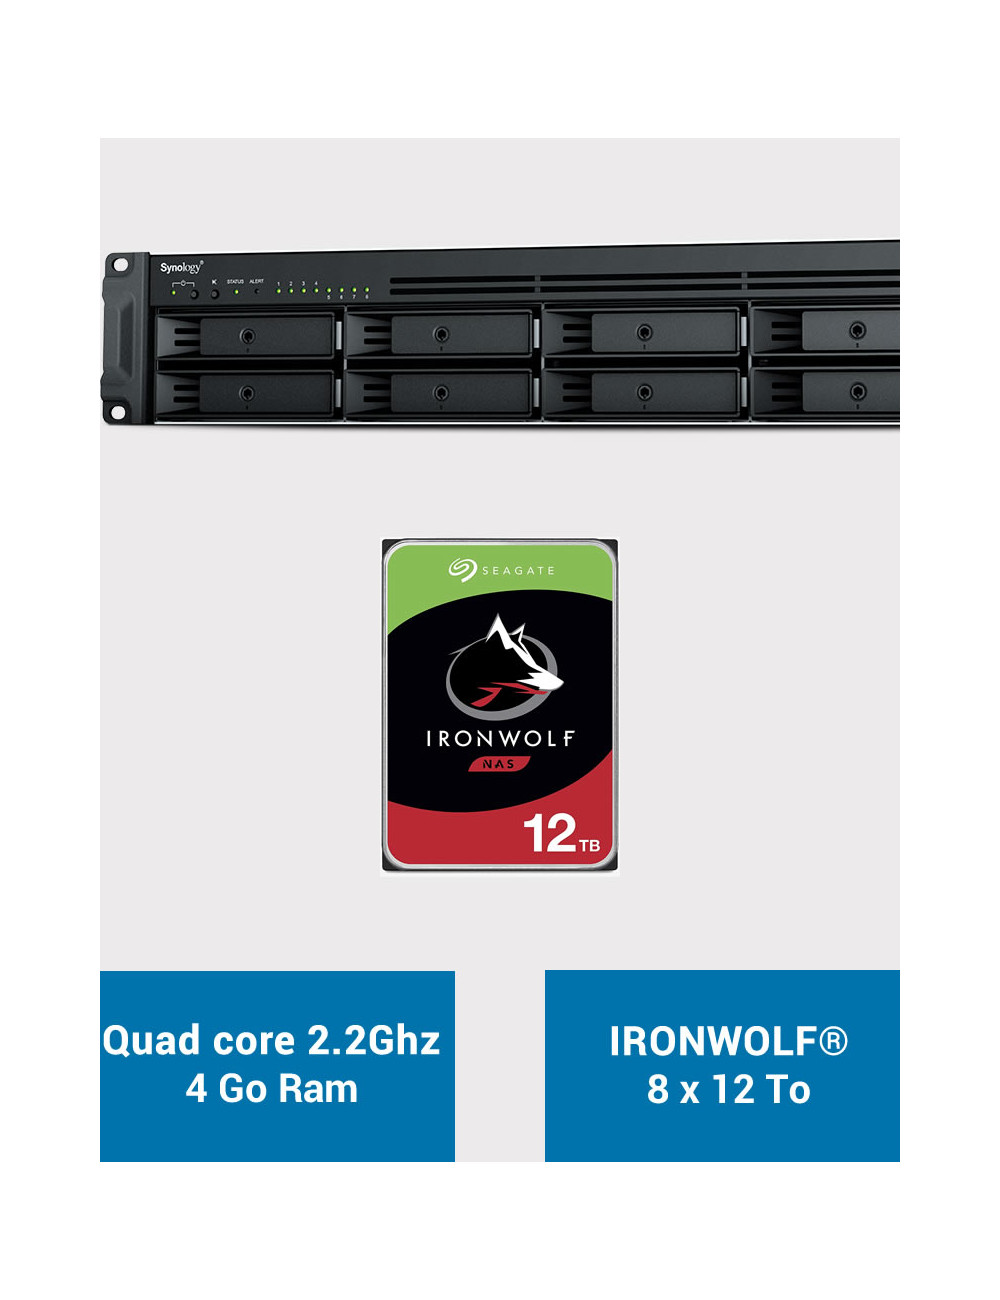 Synology RS1221+ Serveur NAS Rack IRONWOLF 96To (8x12To)